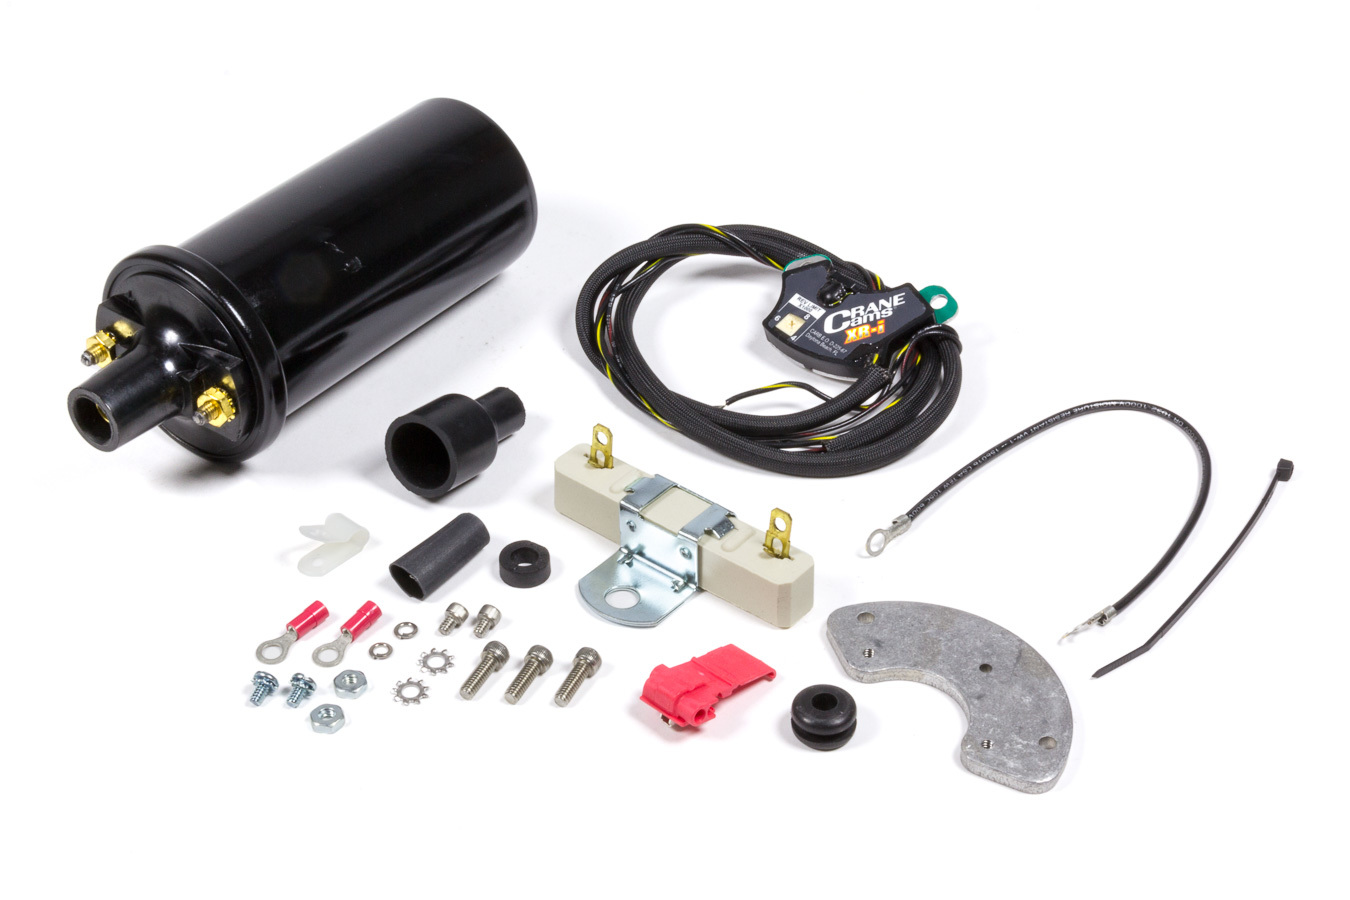 Fast Electronics 750-1715 Ignition Conversion Kit, XR-I, Points to Electronic, Distributor Cam Lobe Trigger, Rev Limiter, PS20 Coil, Chevy V8, Kit